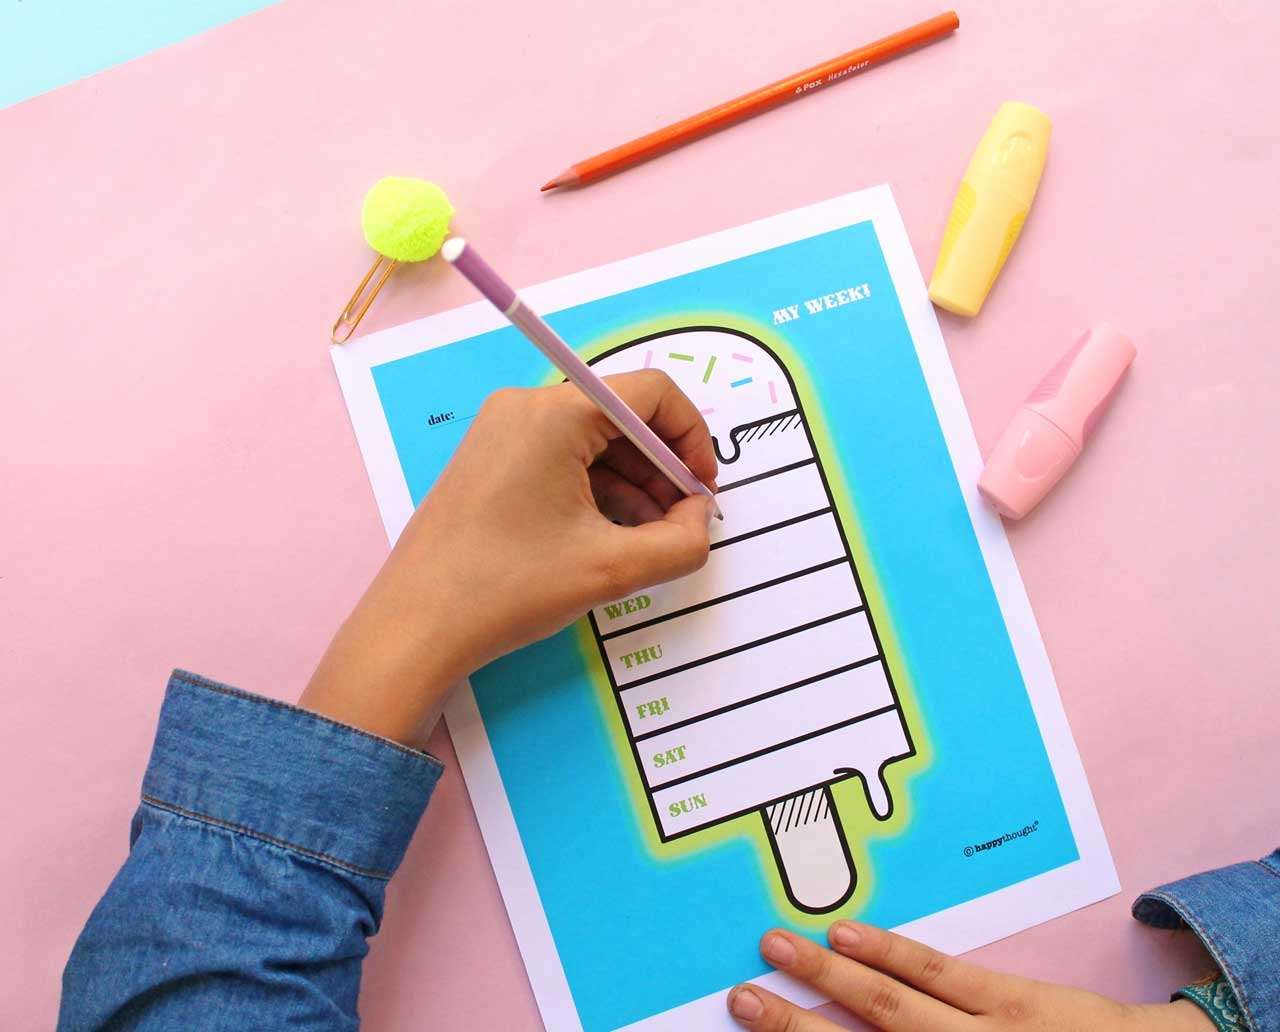 Keep ahead of schedule with this on trend DIY weekly planner for your home or office